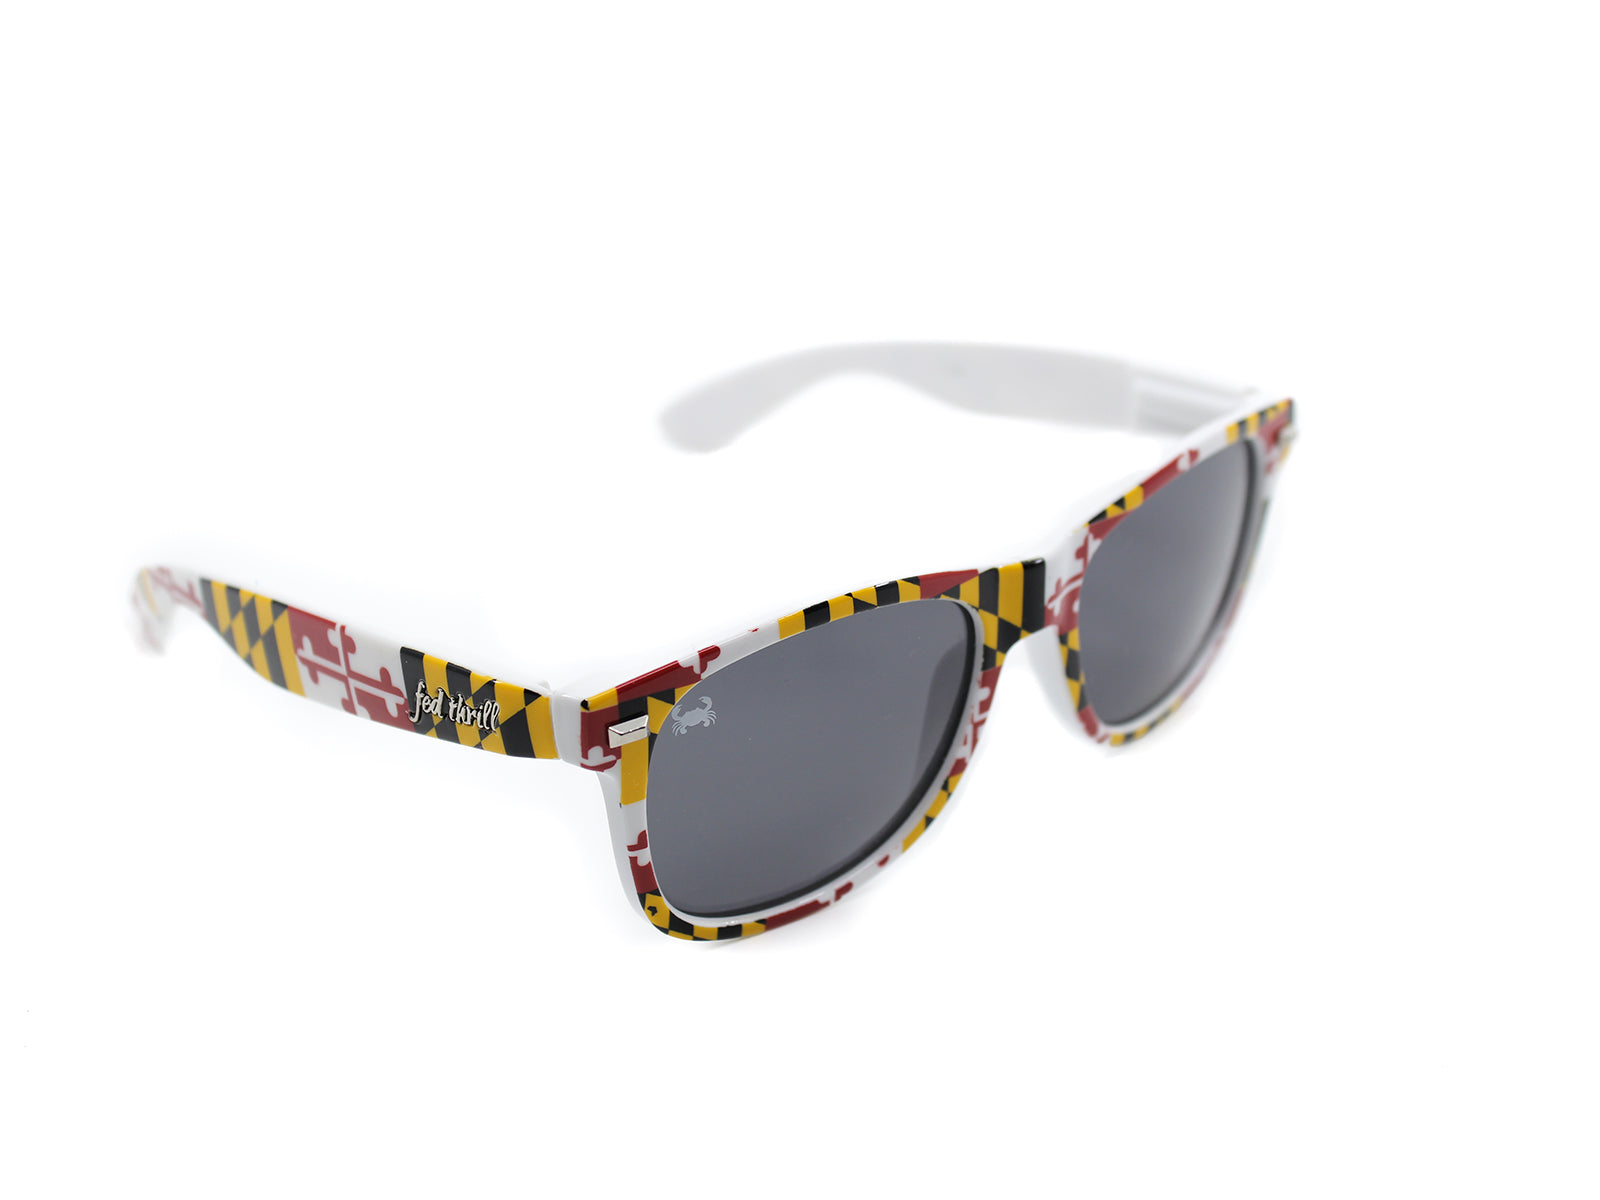 Fultons - Marylands: Glossy Maryland Flag / Smoke Polarized w/Crab